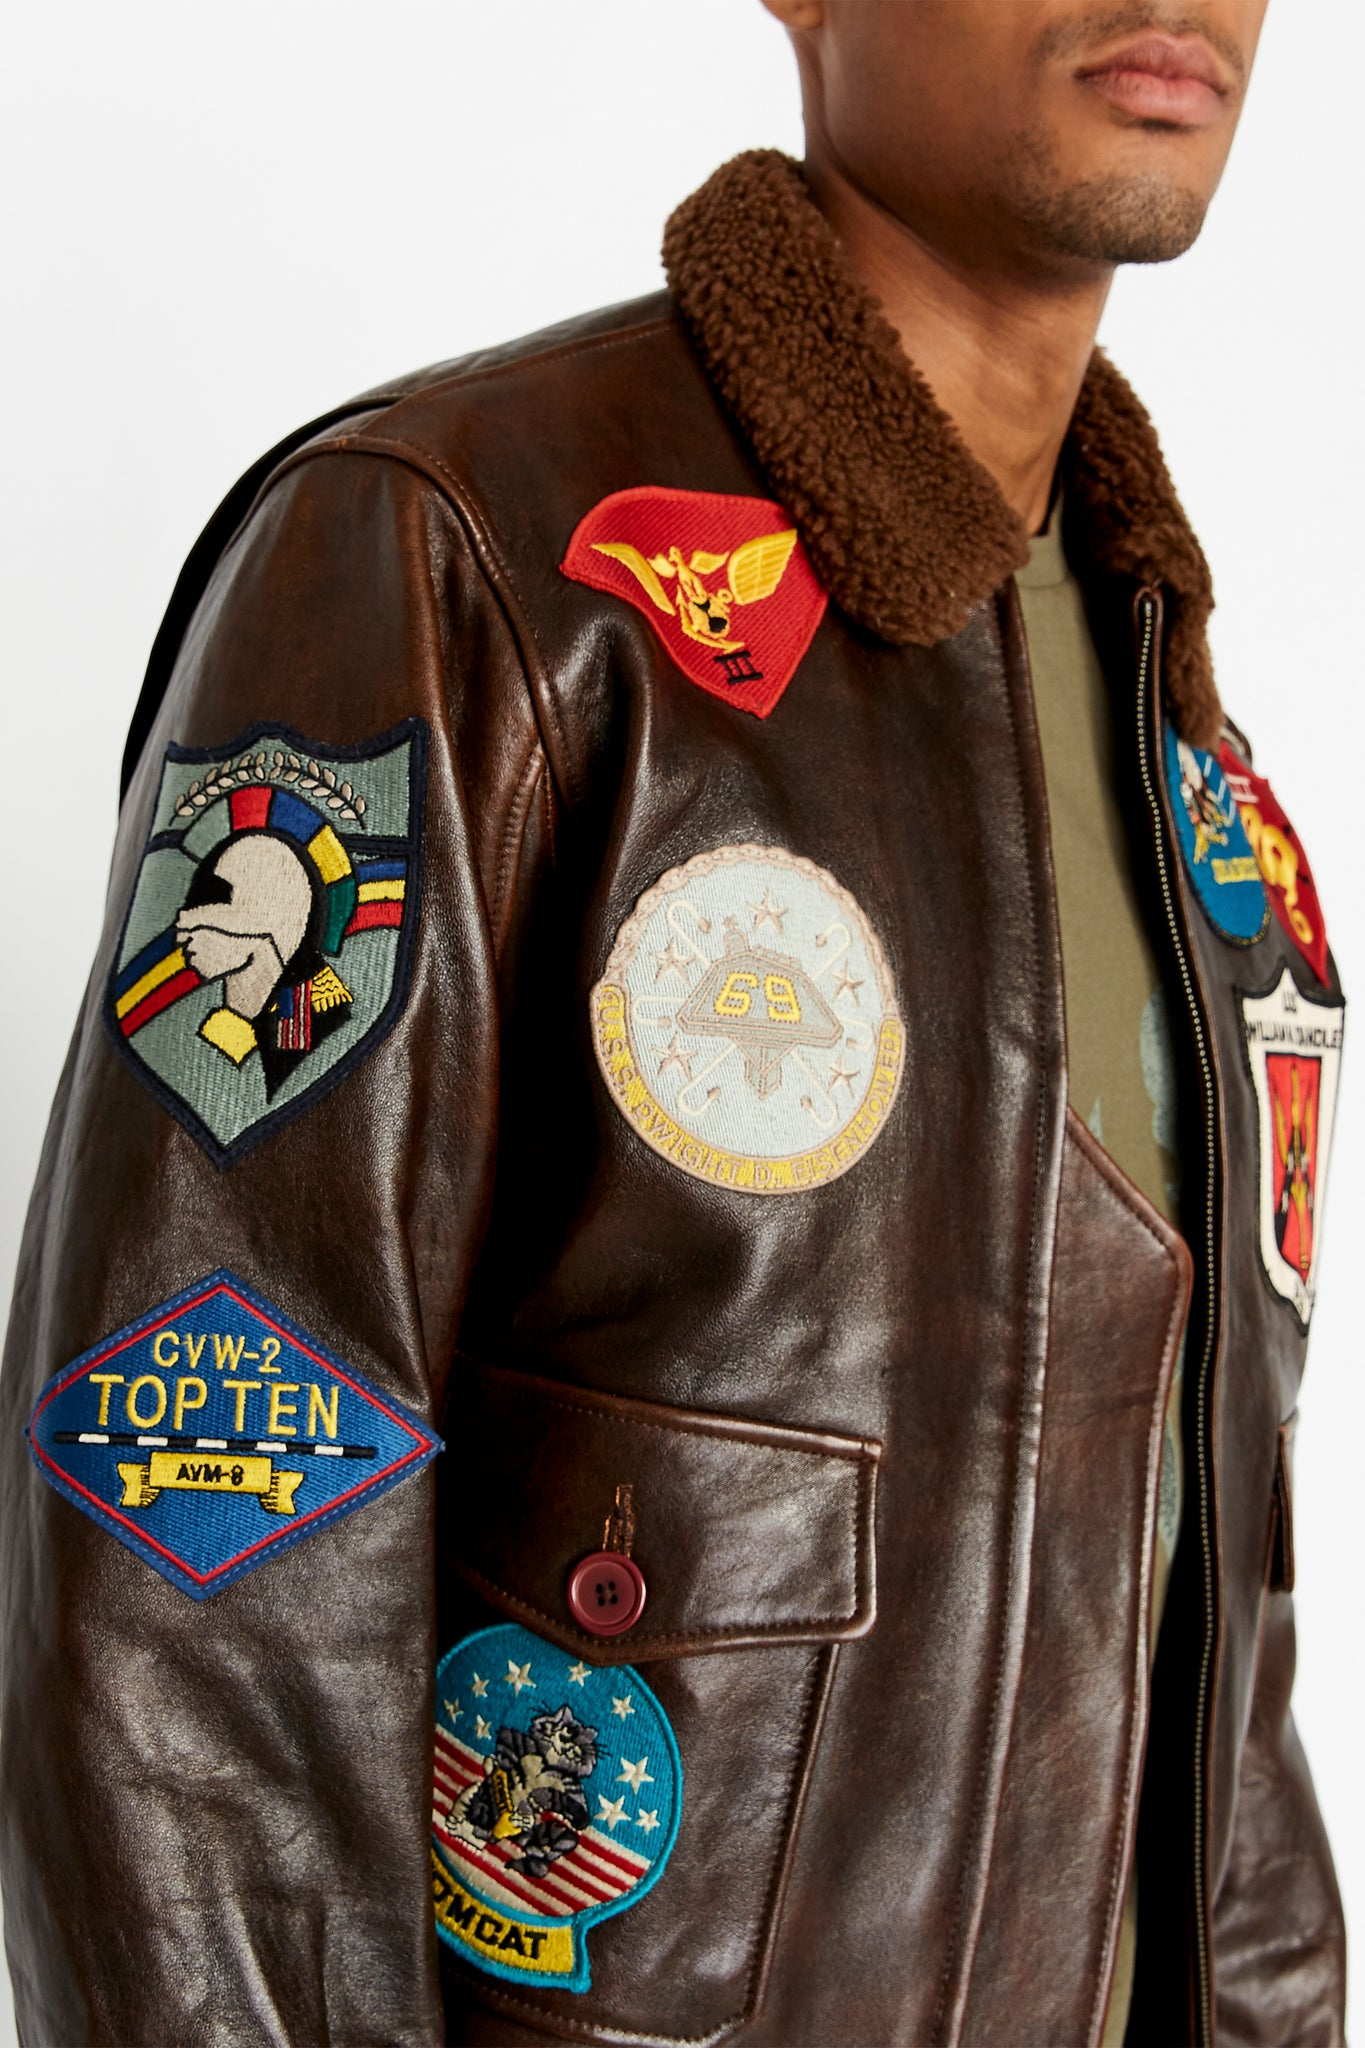 Detailed view of Top Gun colorful patches on right side of bodice.  Five patches applied, including Tom Cat patch on right flap pocket with button closure